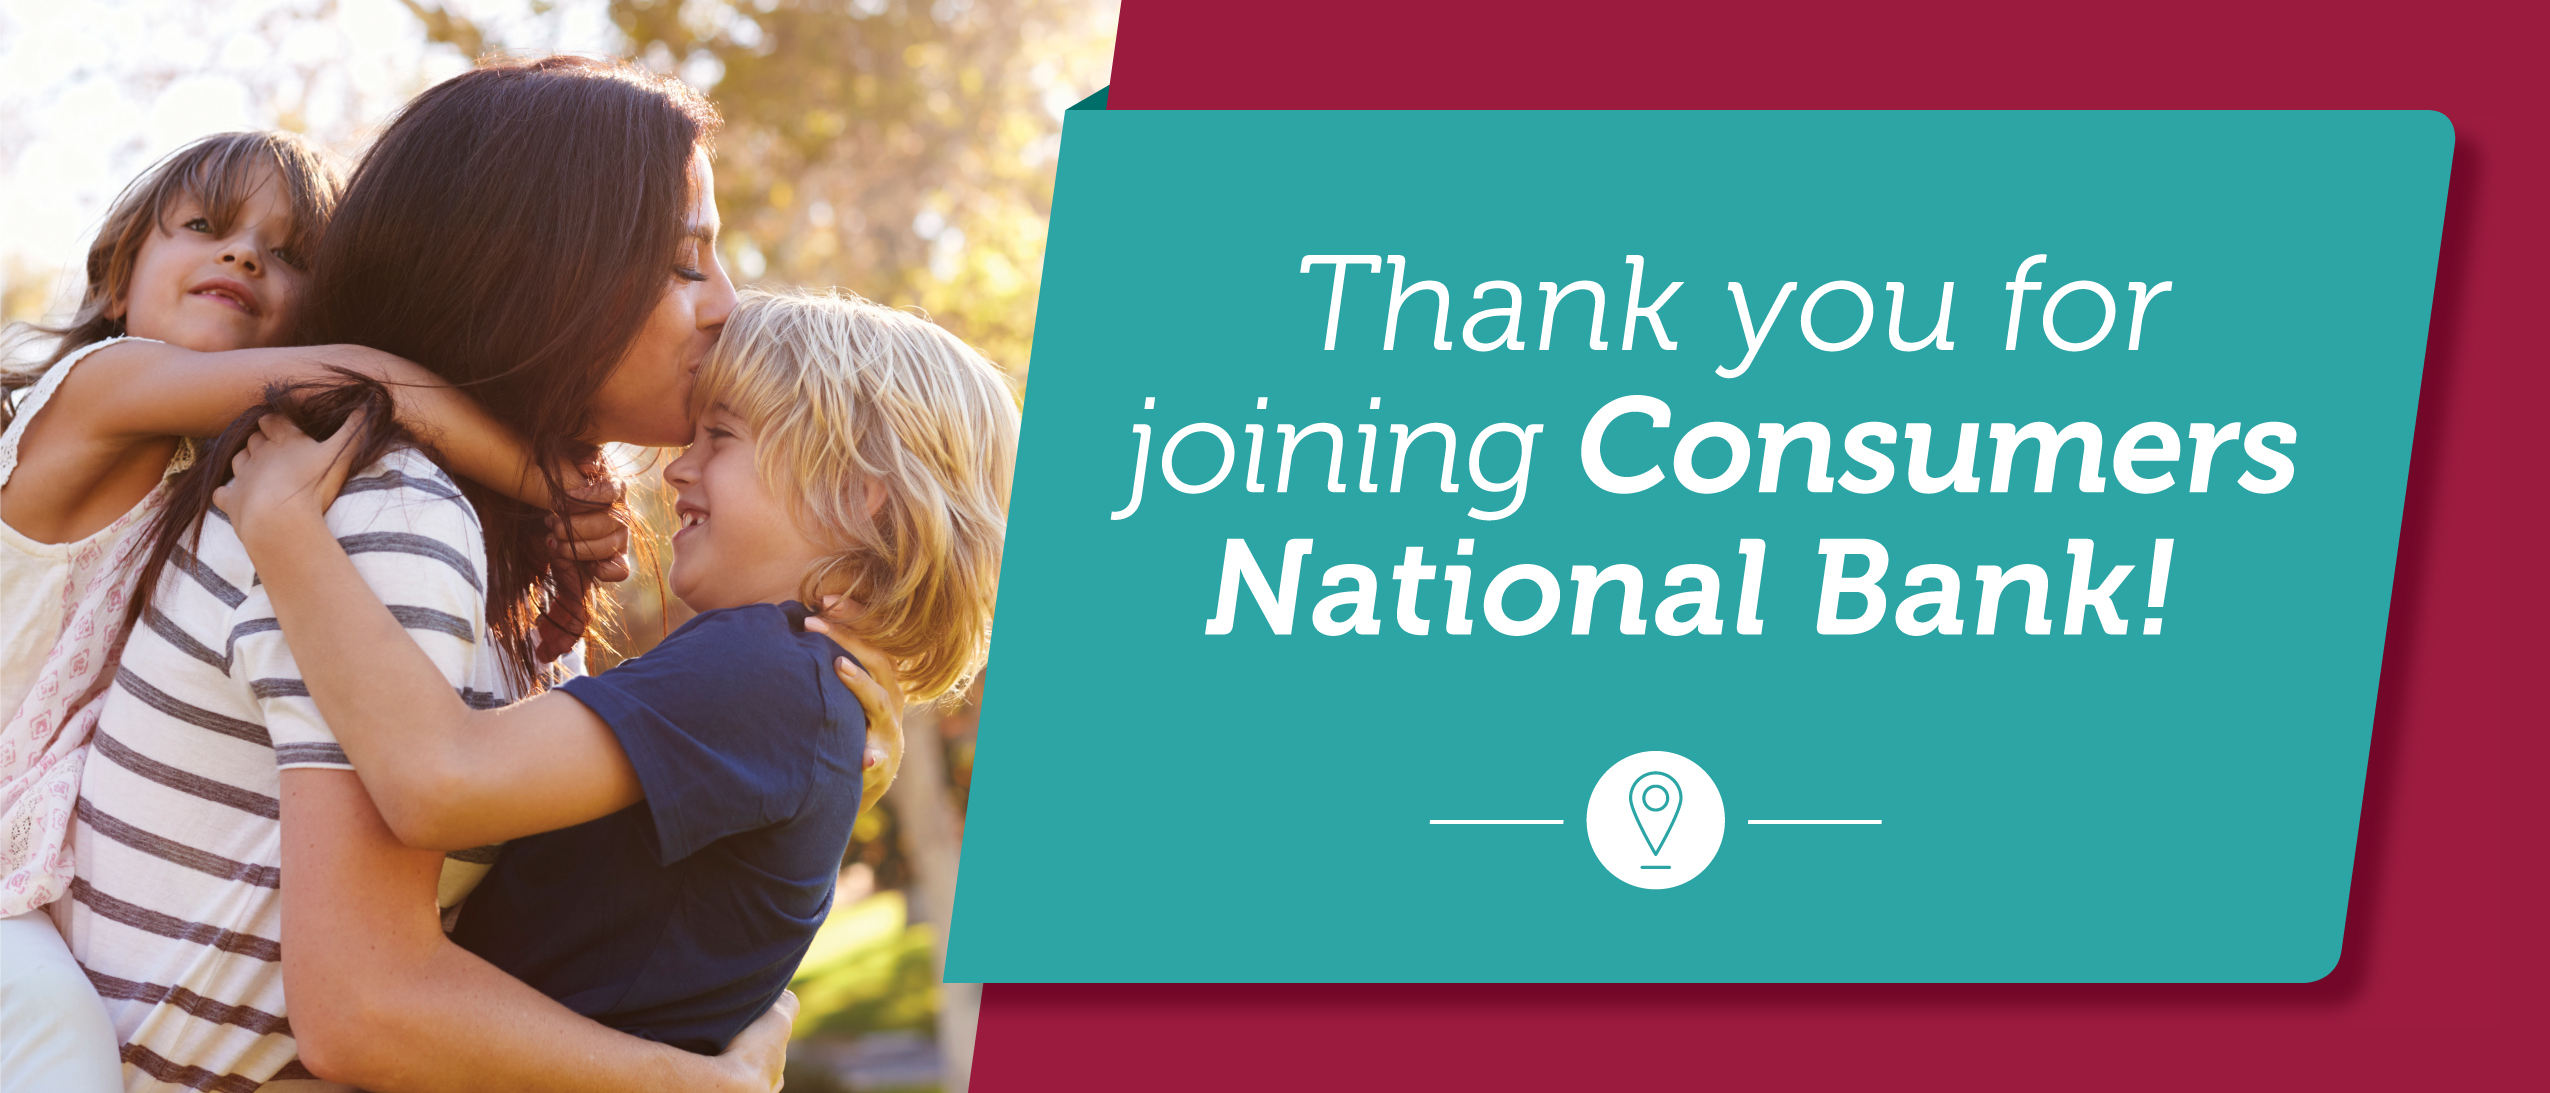 Thank you for joining Consumers National Bank!